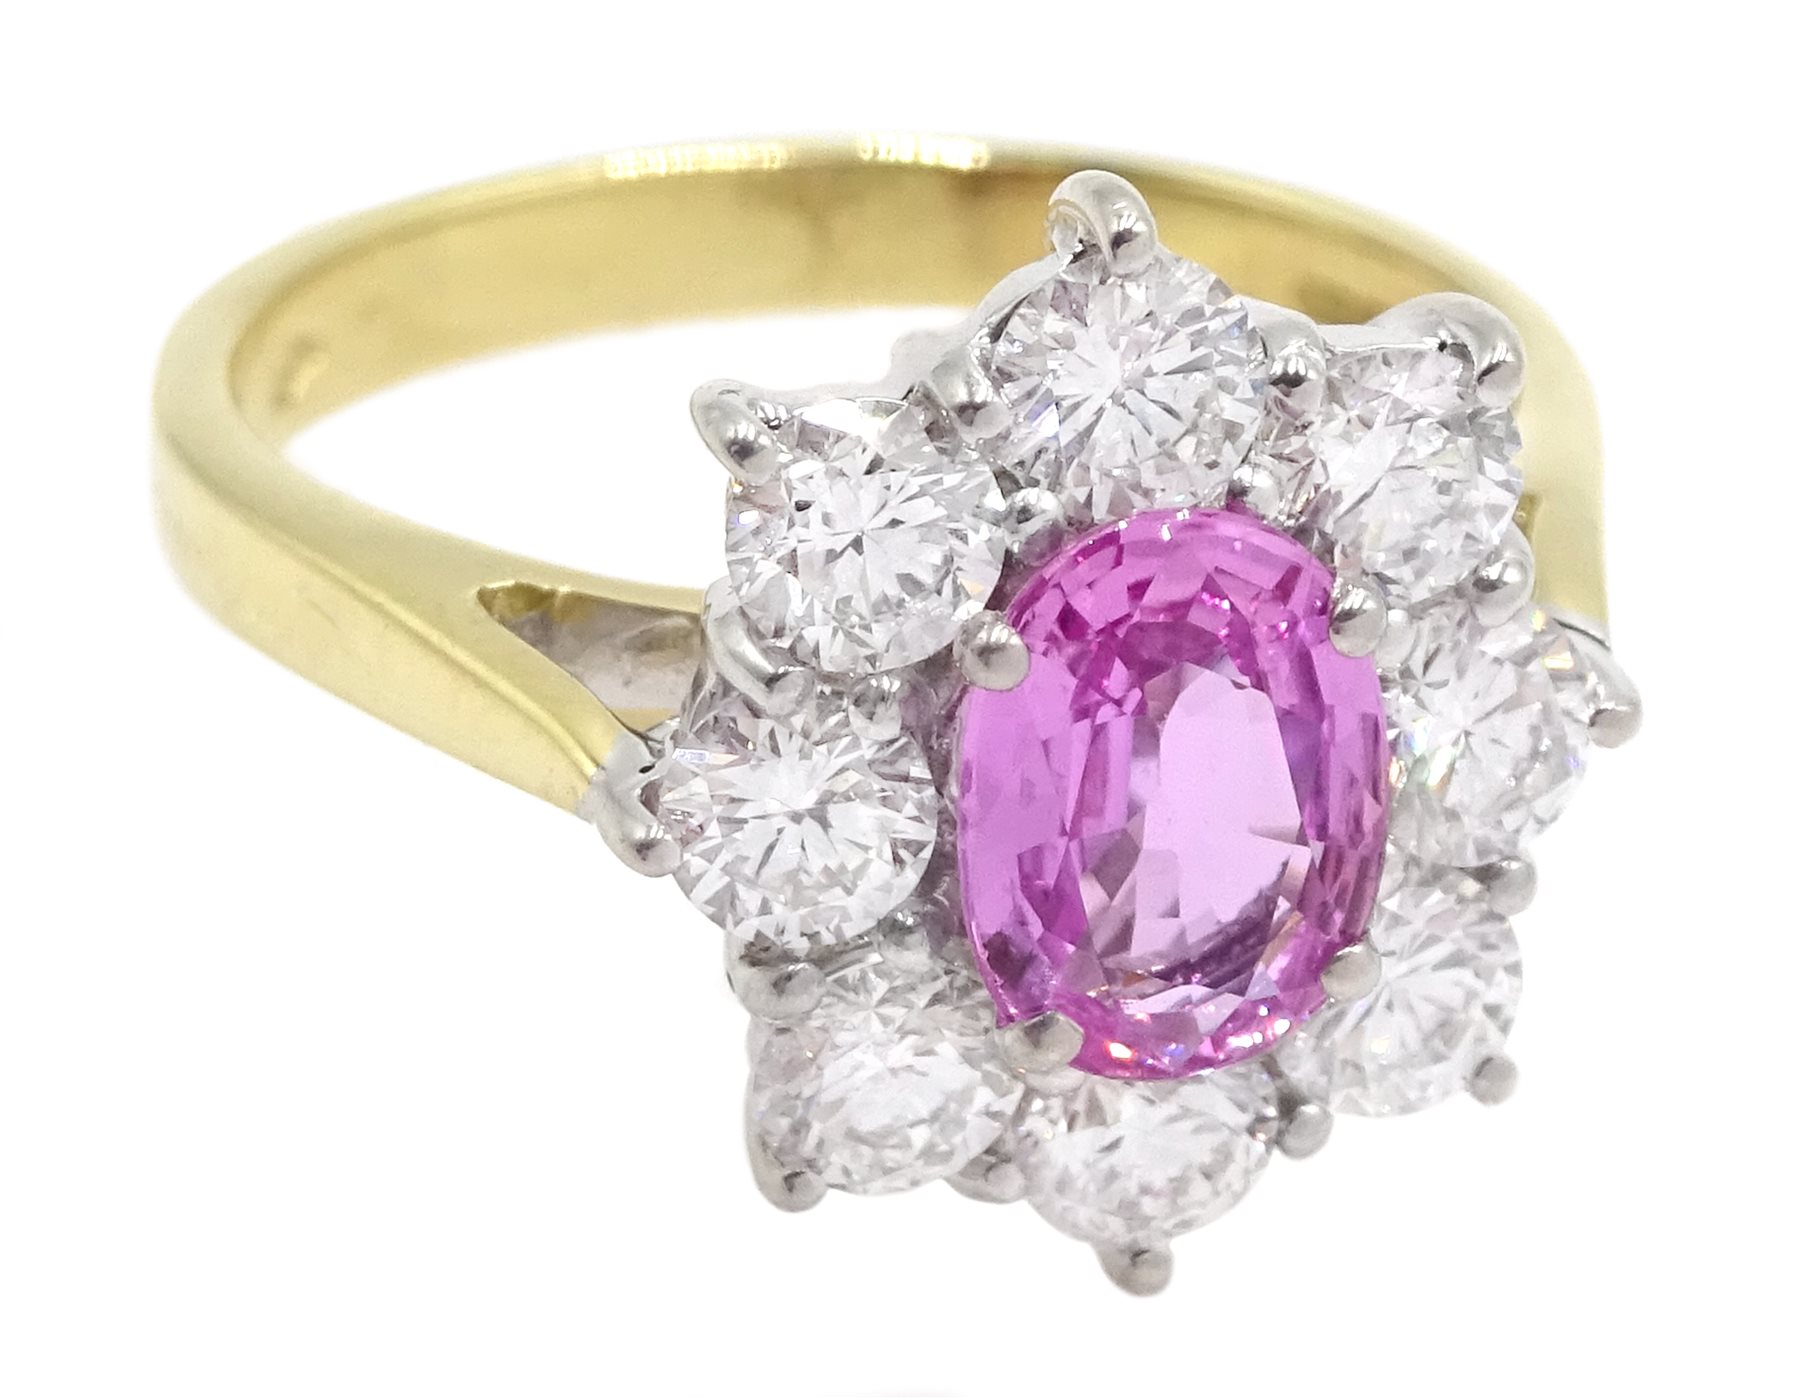 18ct gold pink sapphire and diamond cluster ring - Image 3 of 6